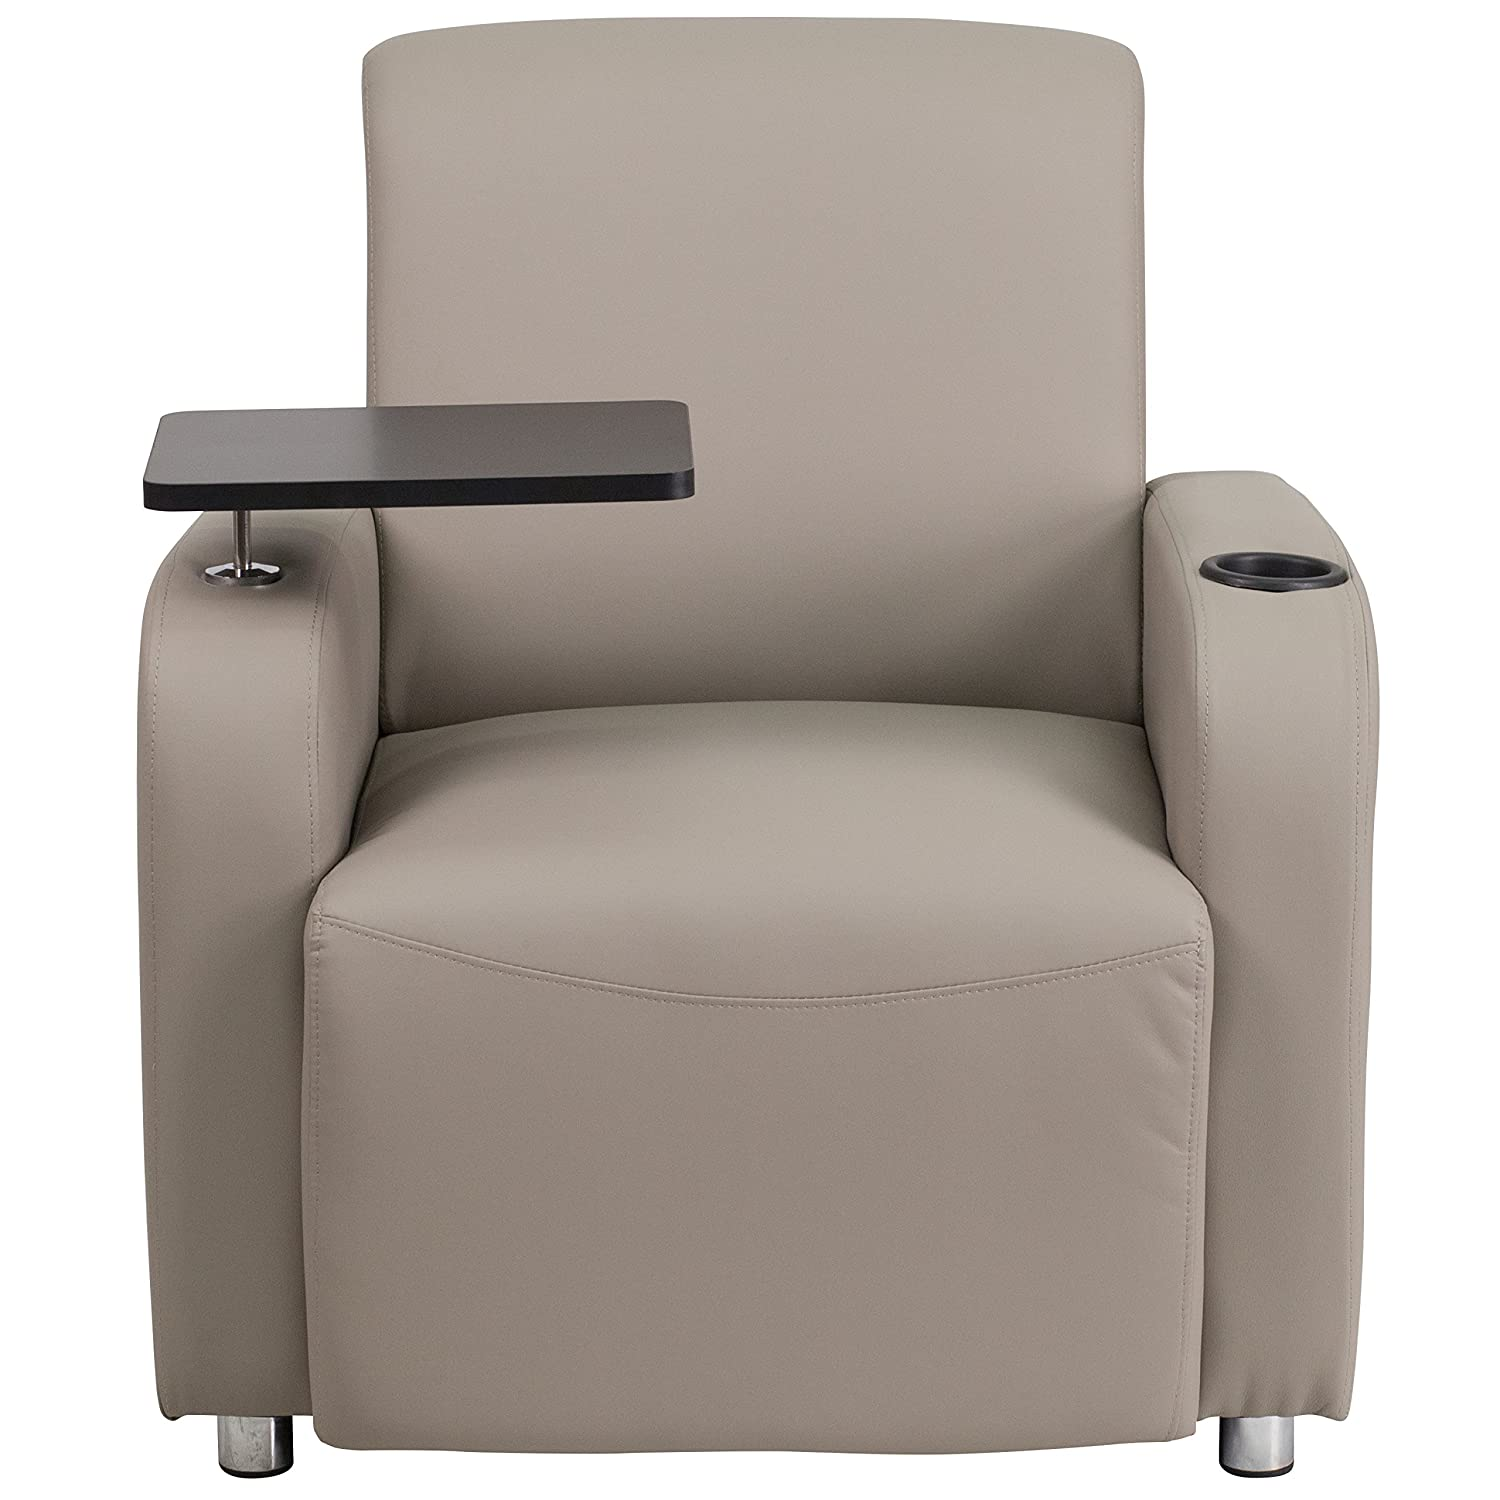 Amazon.com: Flash Furniture Gray Leather Guest Chair With Tablet Arm,  Chrome Legs And Cup Holder: Kitchen U0026 Dining